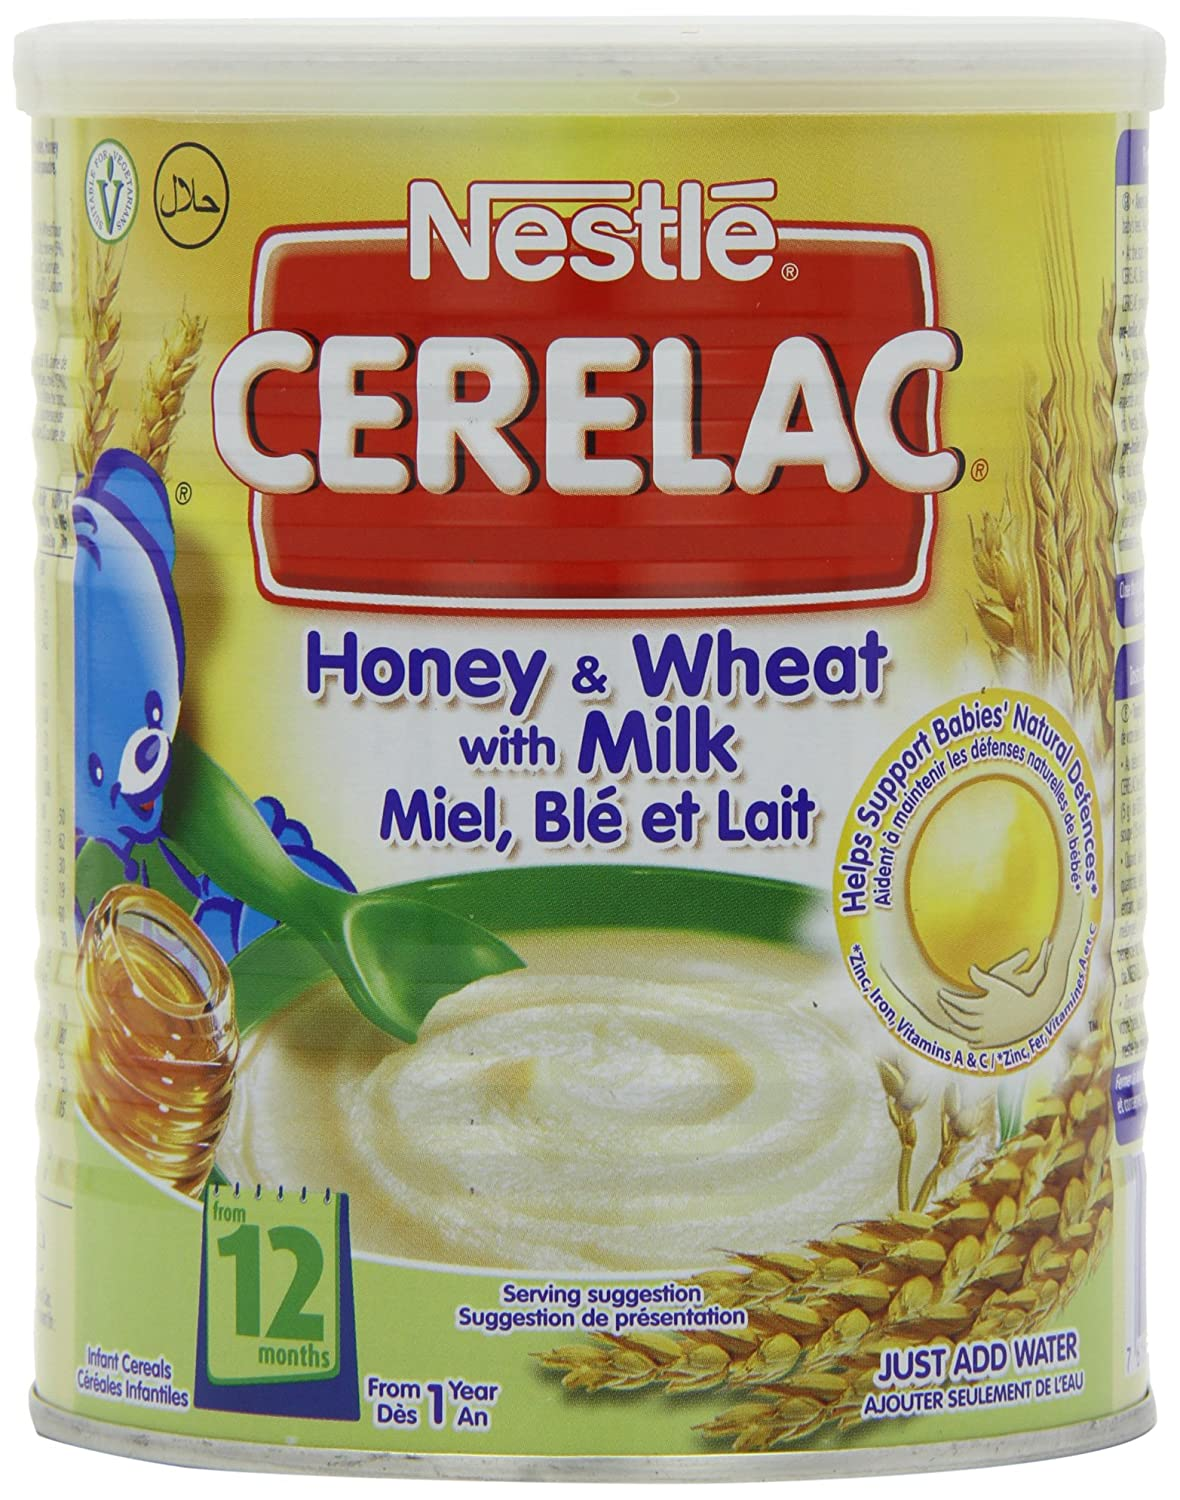 Nestle Cerelac From 12 Months Honey and Wheat with Milk 400 g (Pack of 4) DIMBL